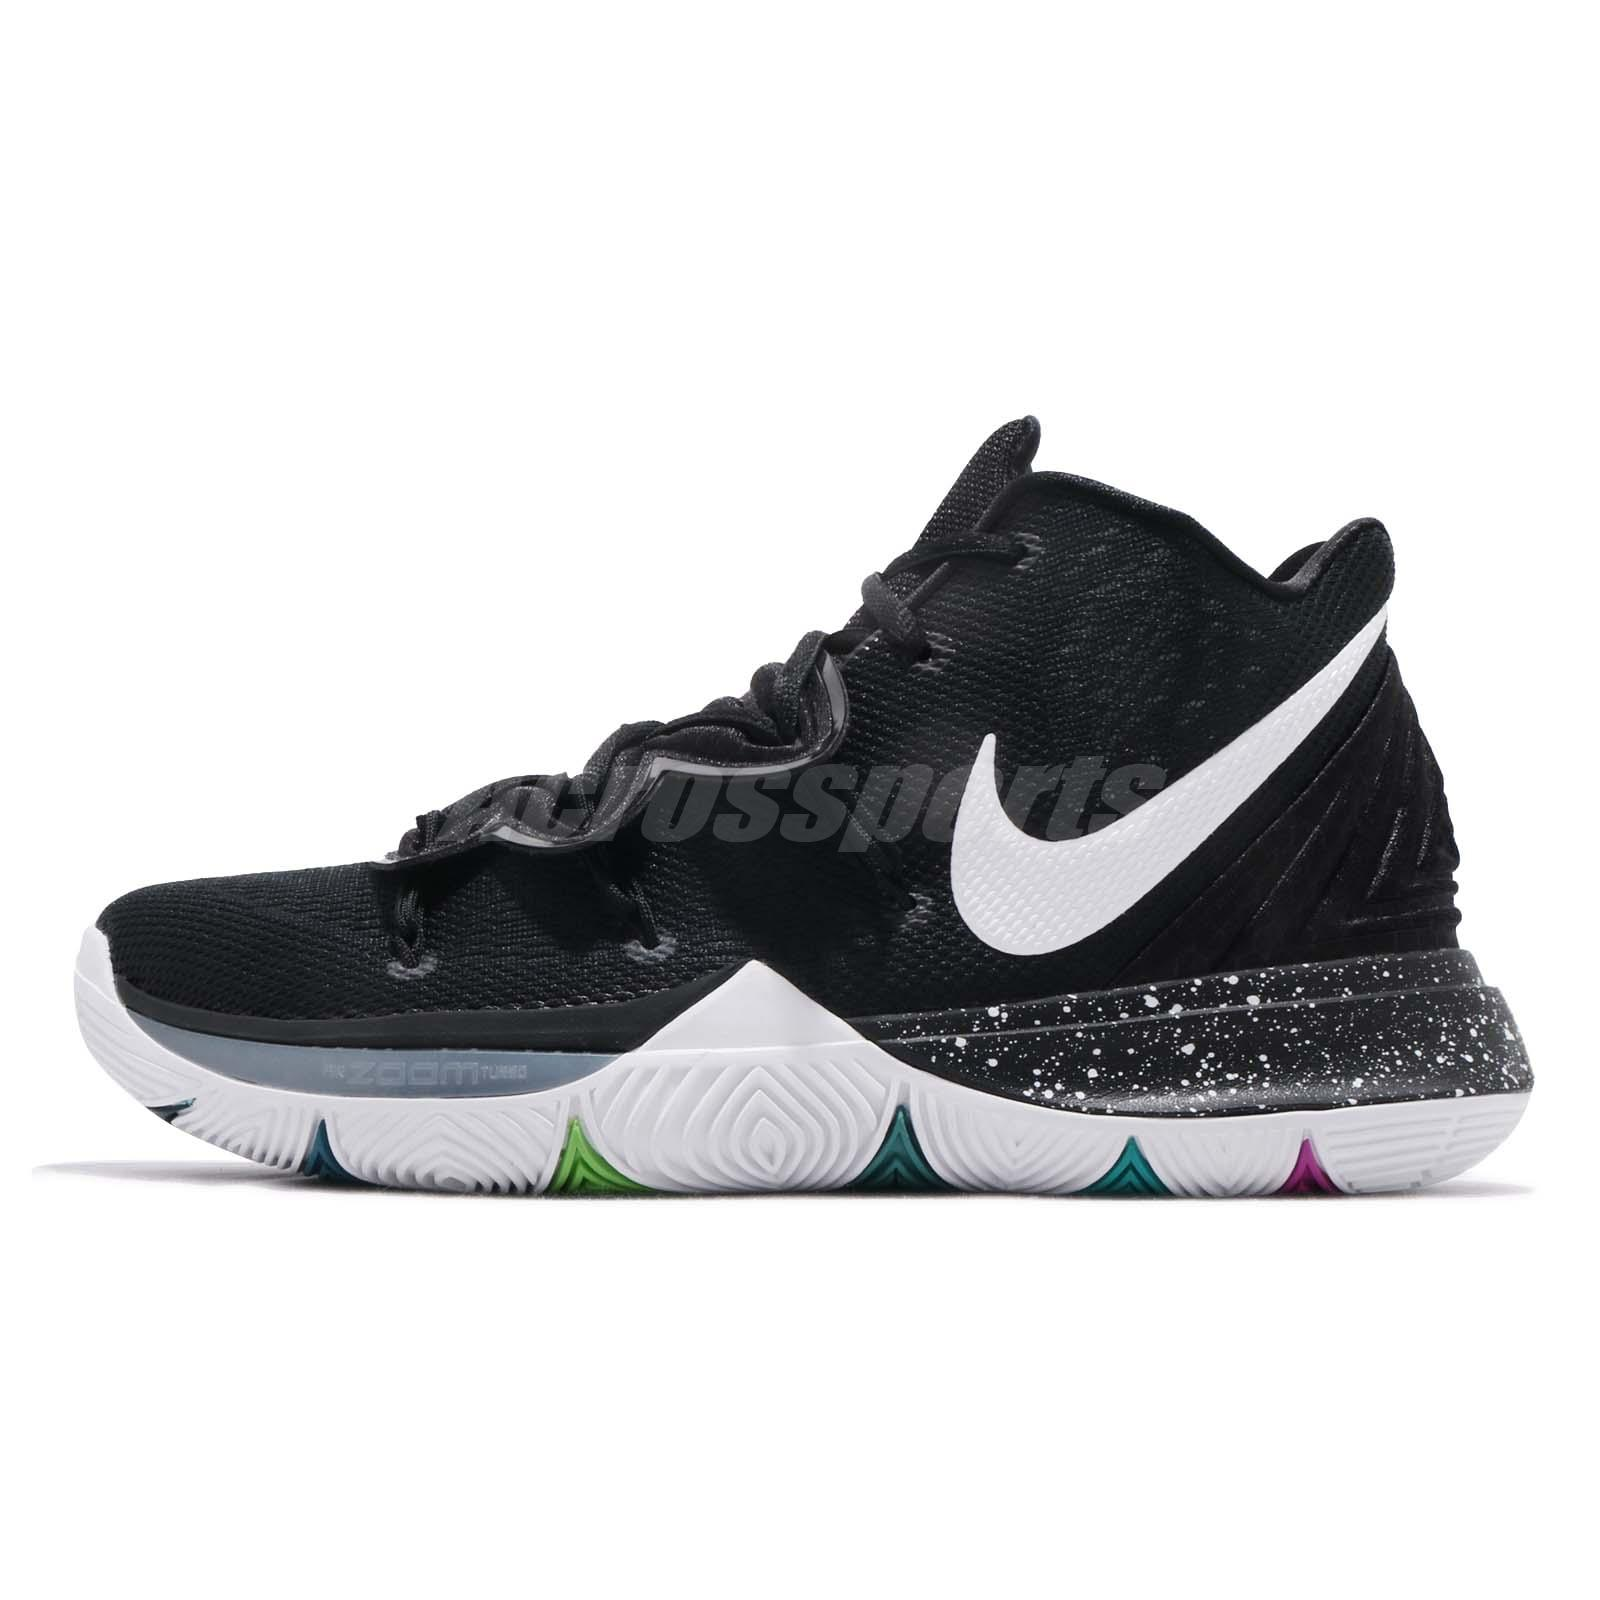 Nike Kyrie 5 EP V Irving Black Magic Men Basketball Shoes Sneakers  AO2919-901 b34293b3a